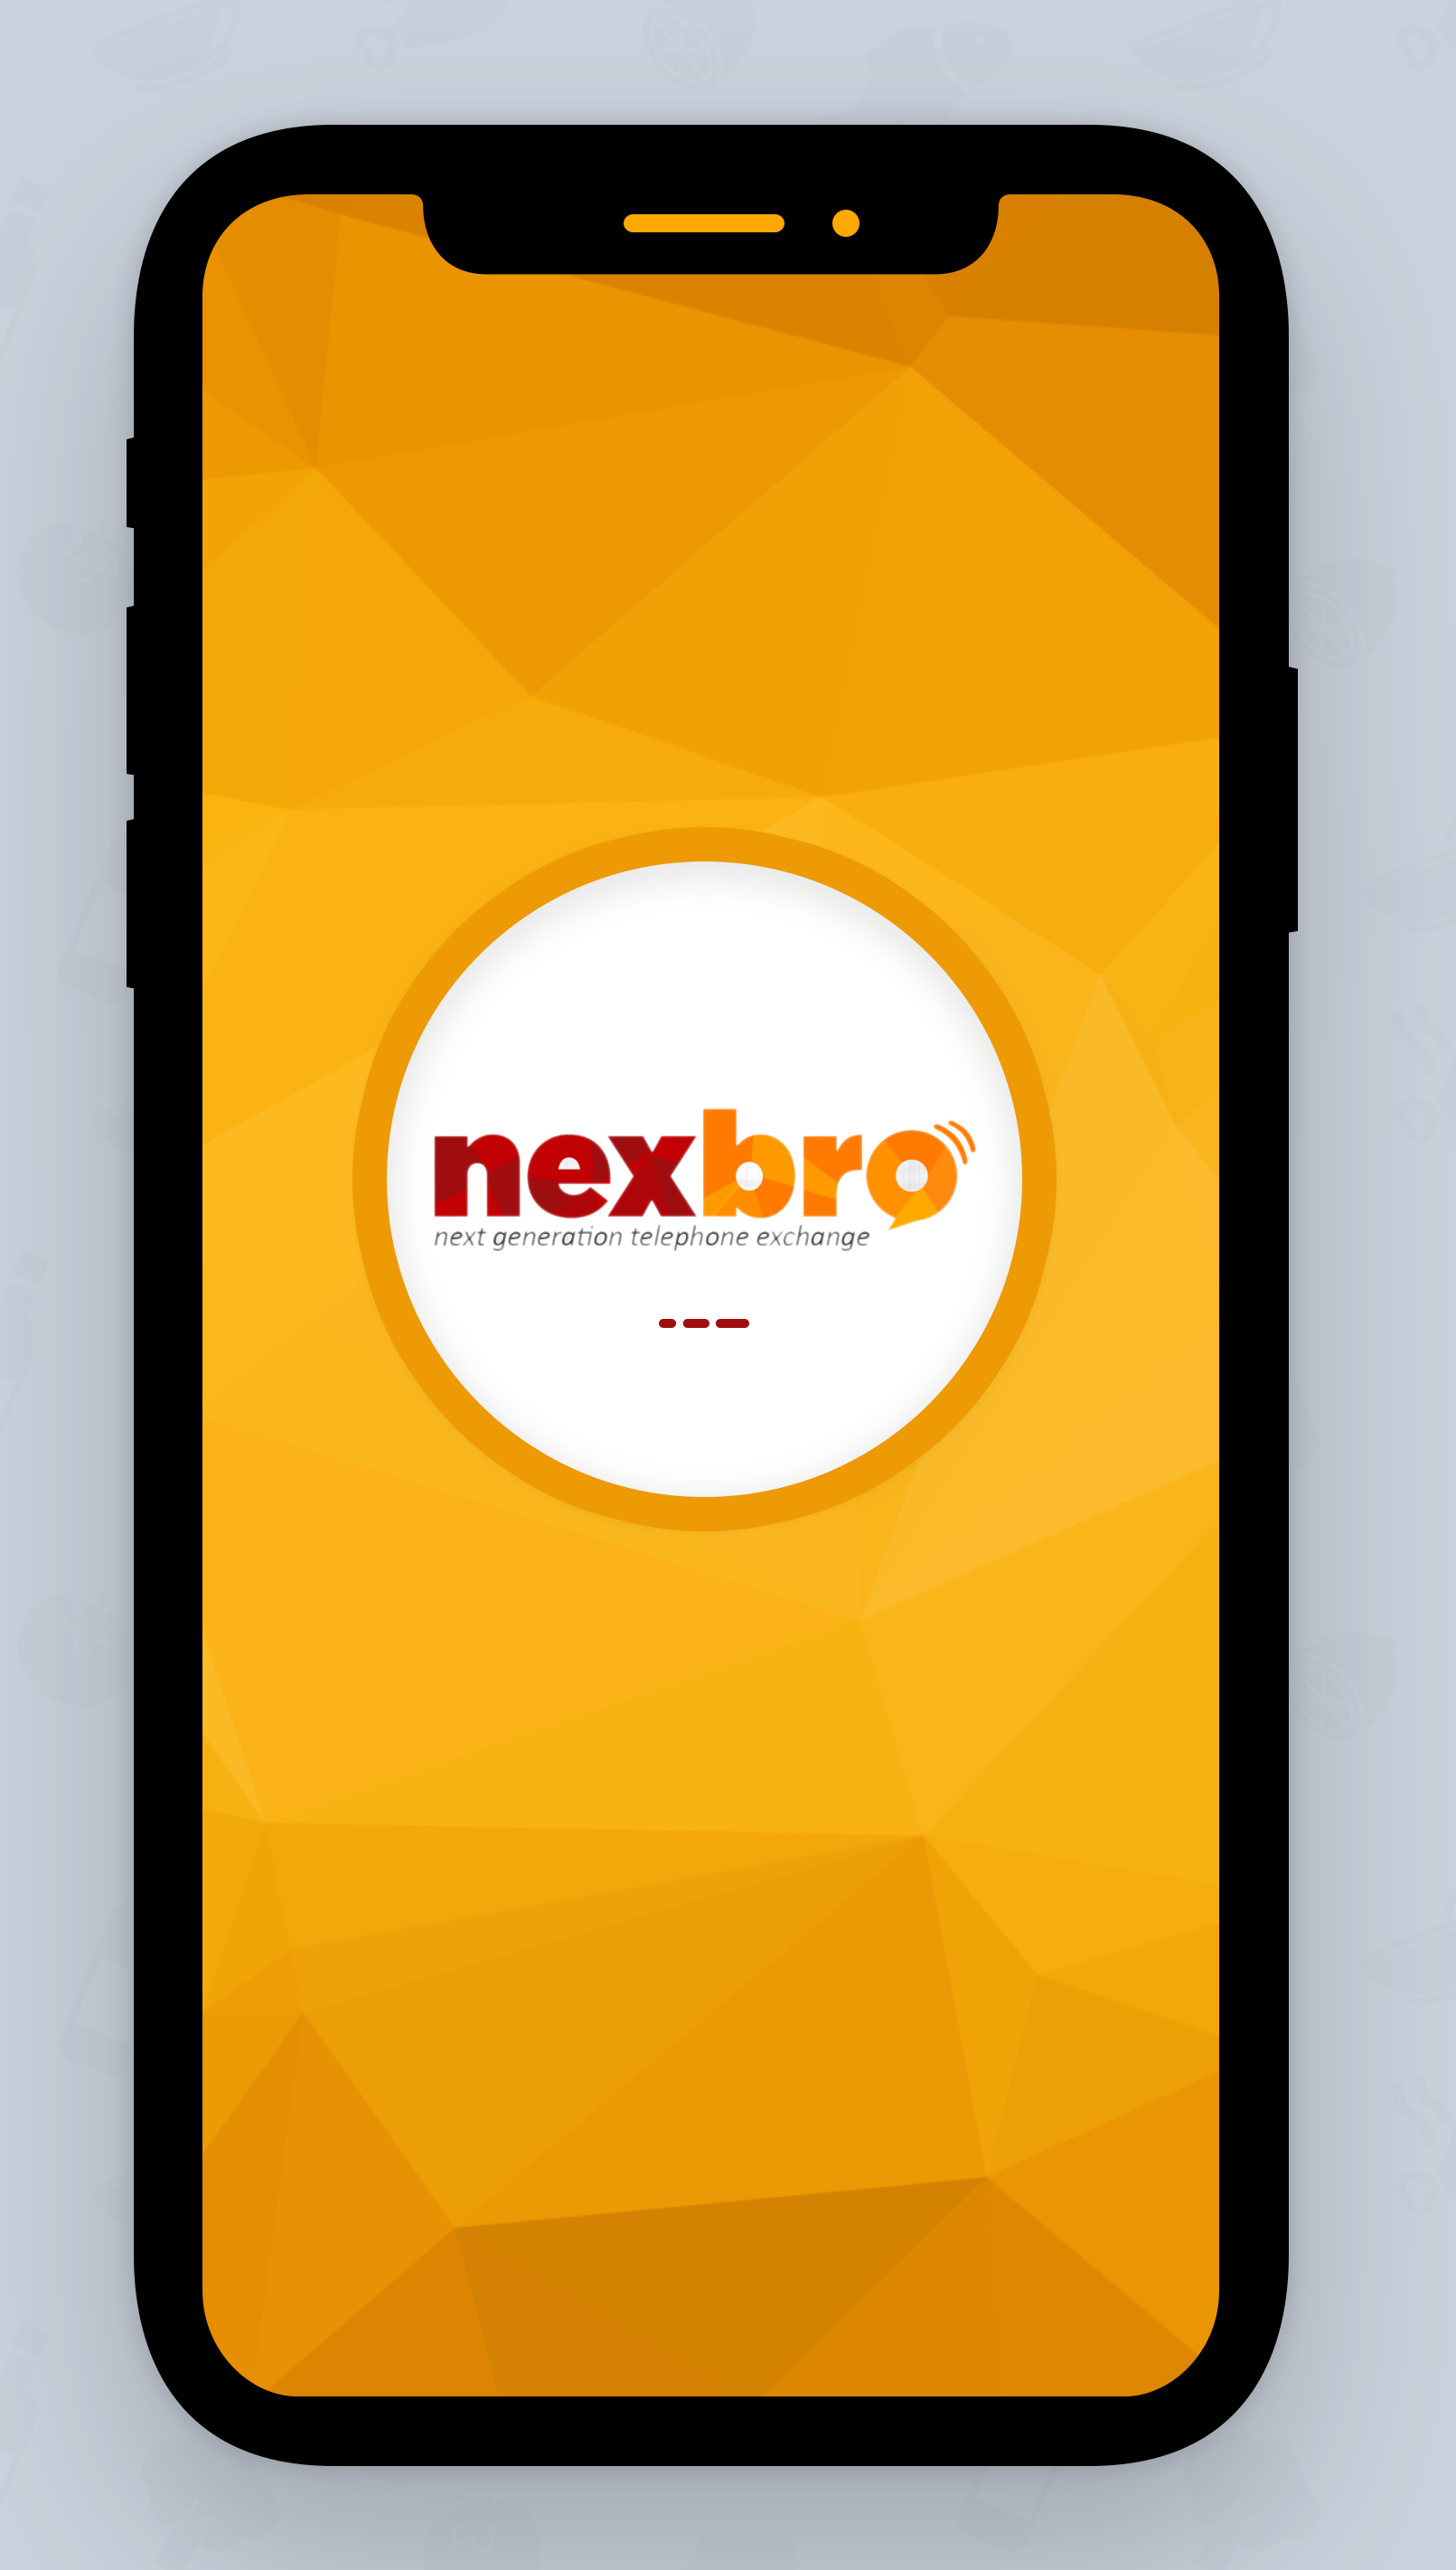 Design a splash screen for Nexbro (Calling Application) on Behance